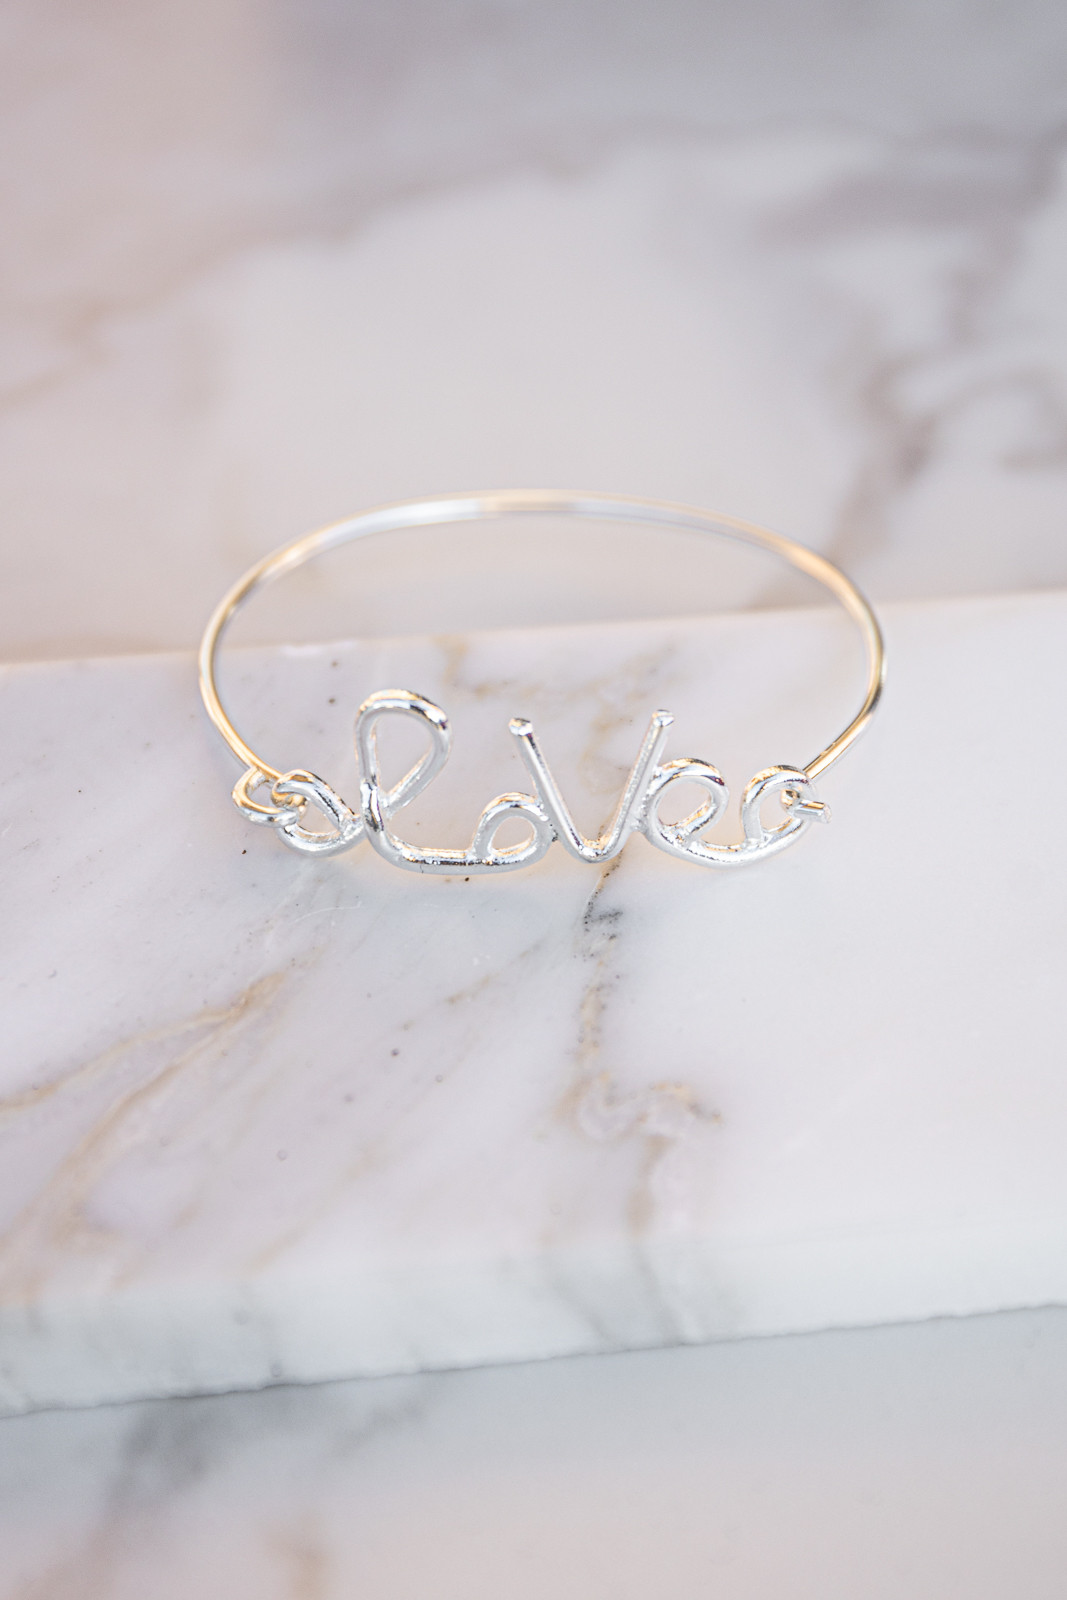 Silver 'Love' Wire Bracelet with Push Hook Closure